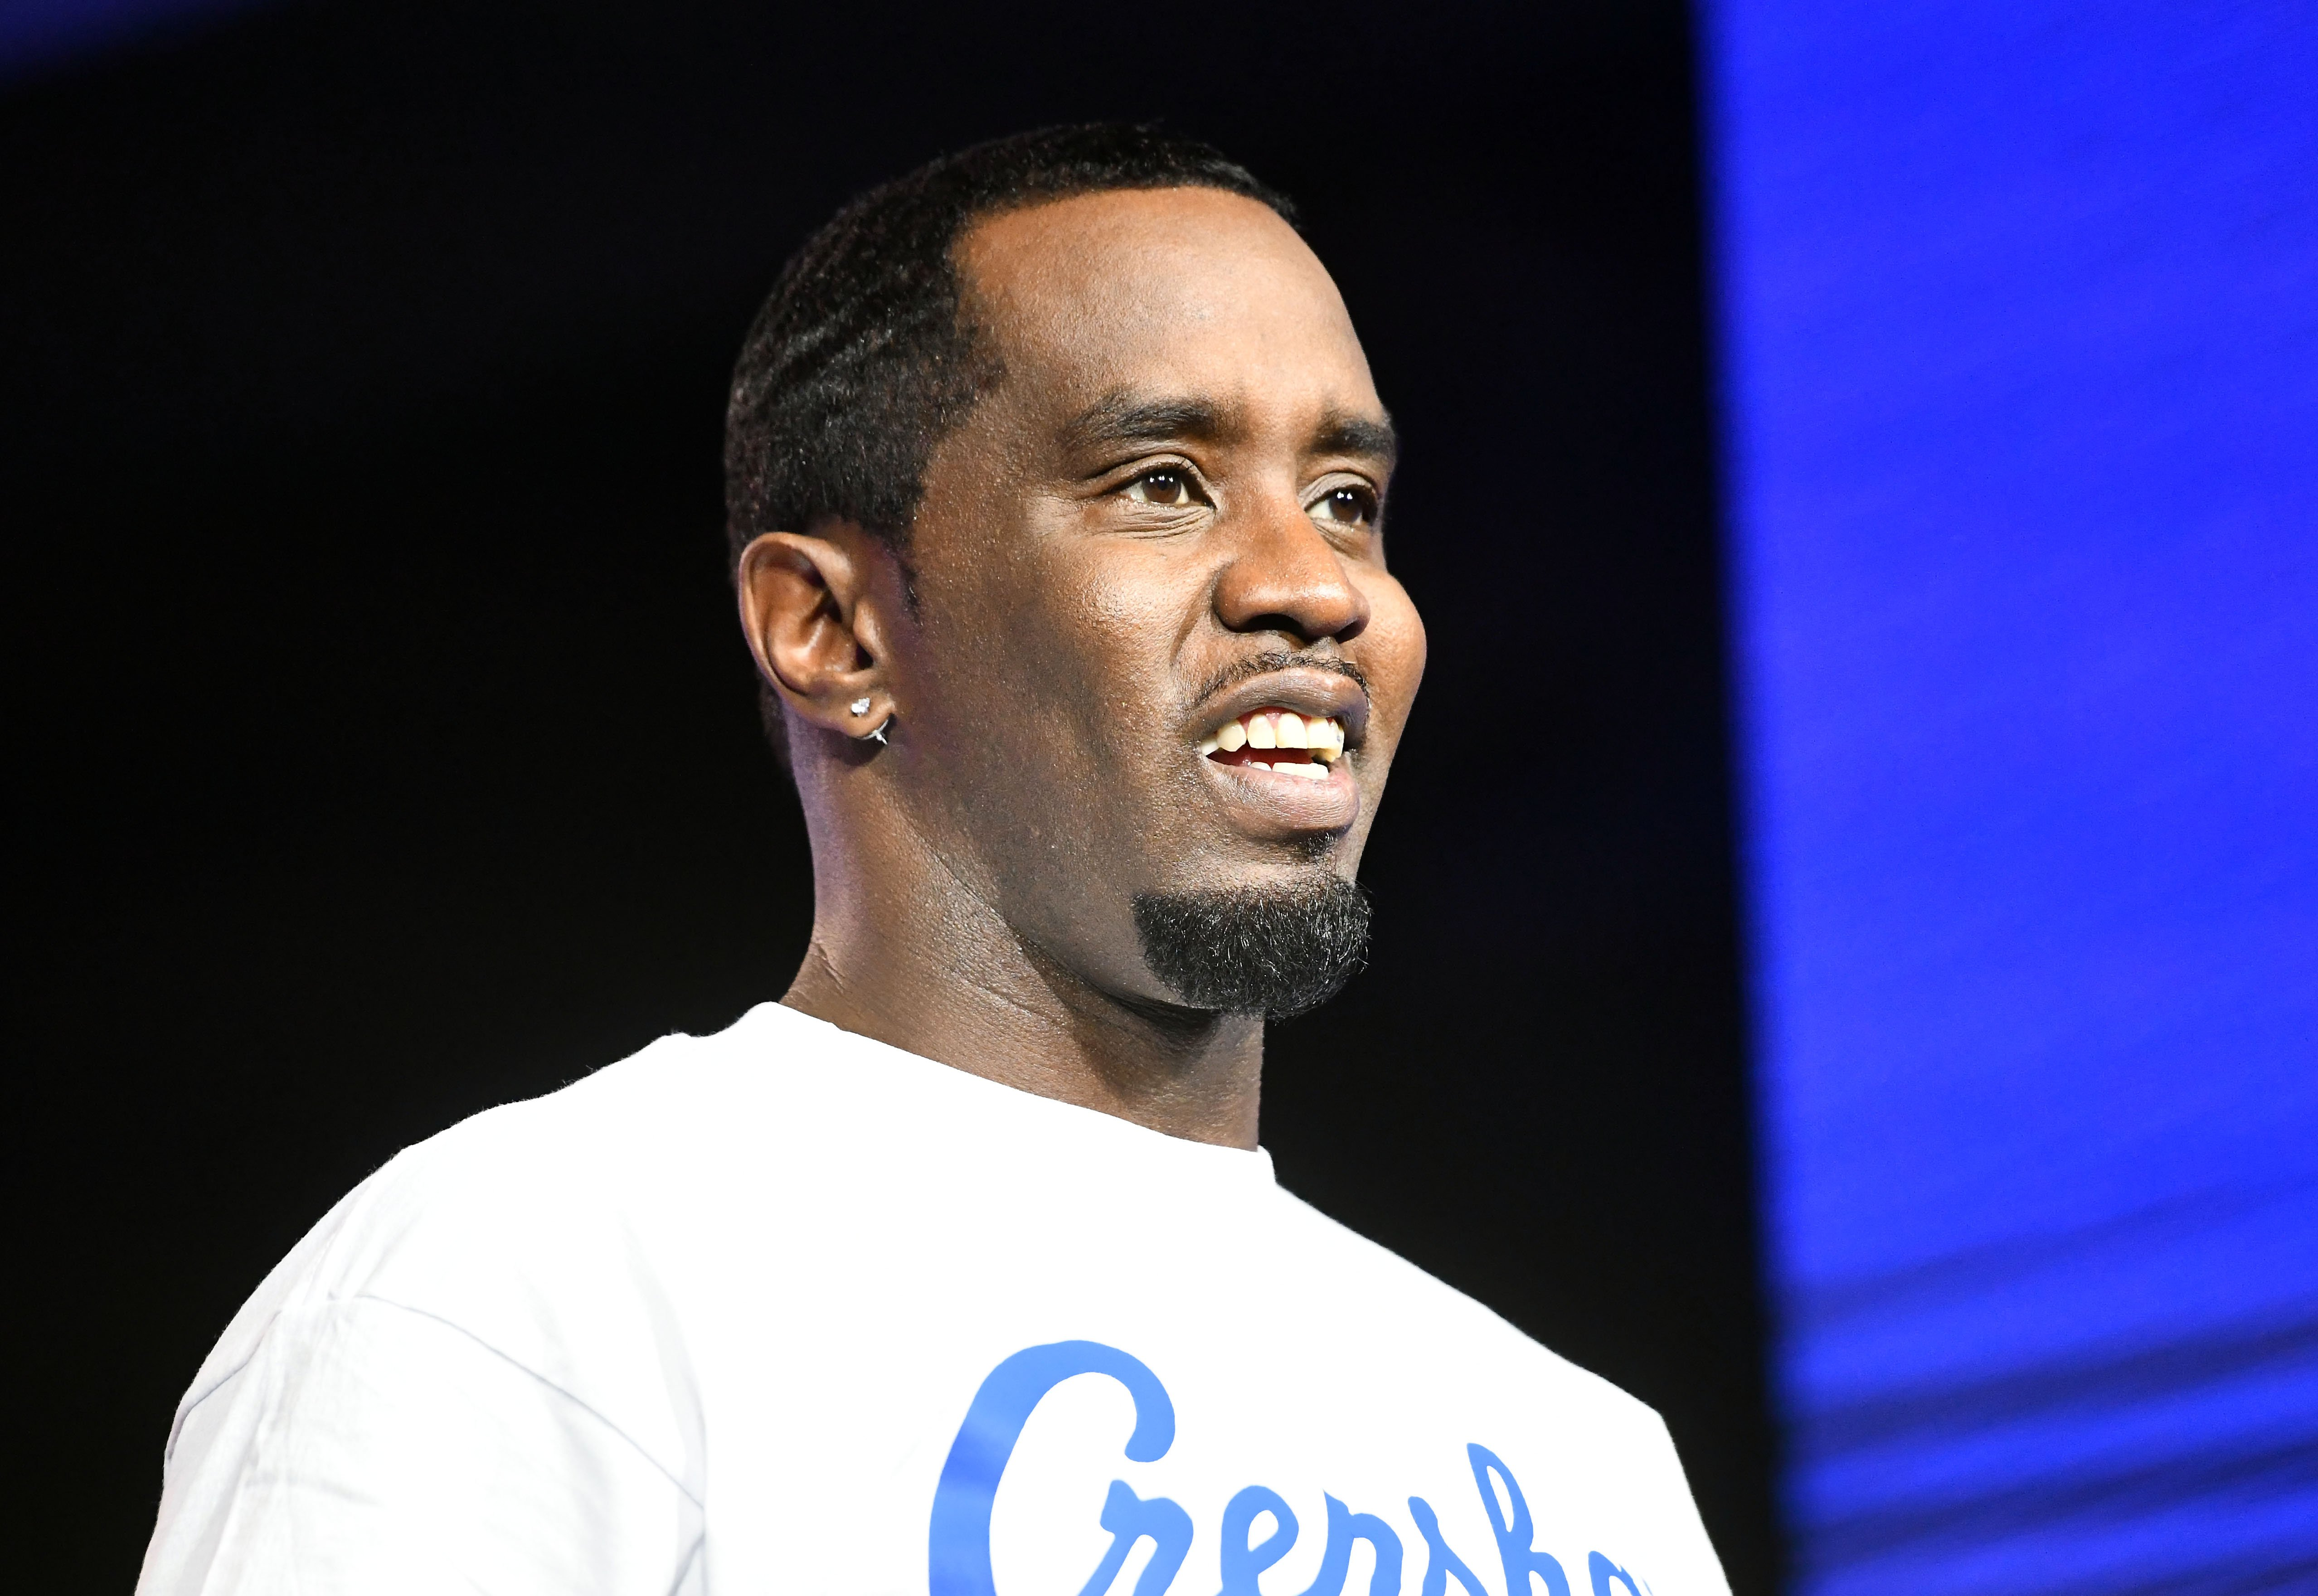 """Sean """"Diddy"""" Combs speaks onstage at the REVOLT X AT&T 3-Day Summit In Los Angeles - Day 1 at Magic Box on October 25, 2019 in Los Angeles, California 